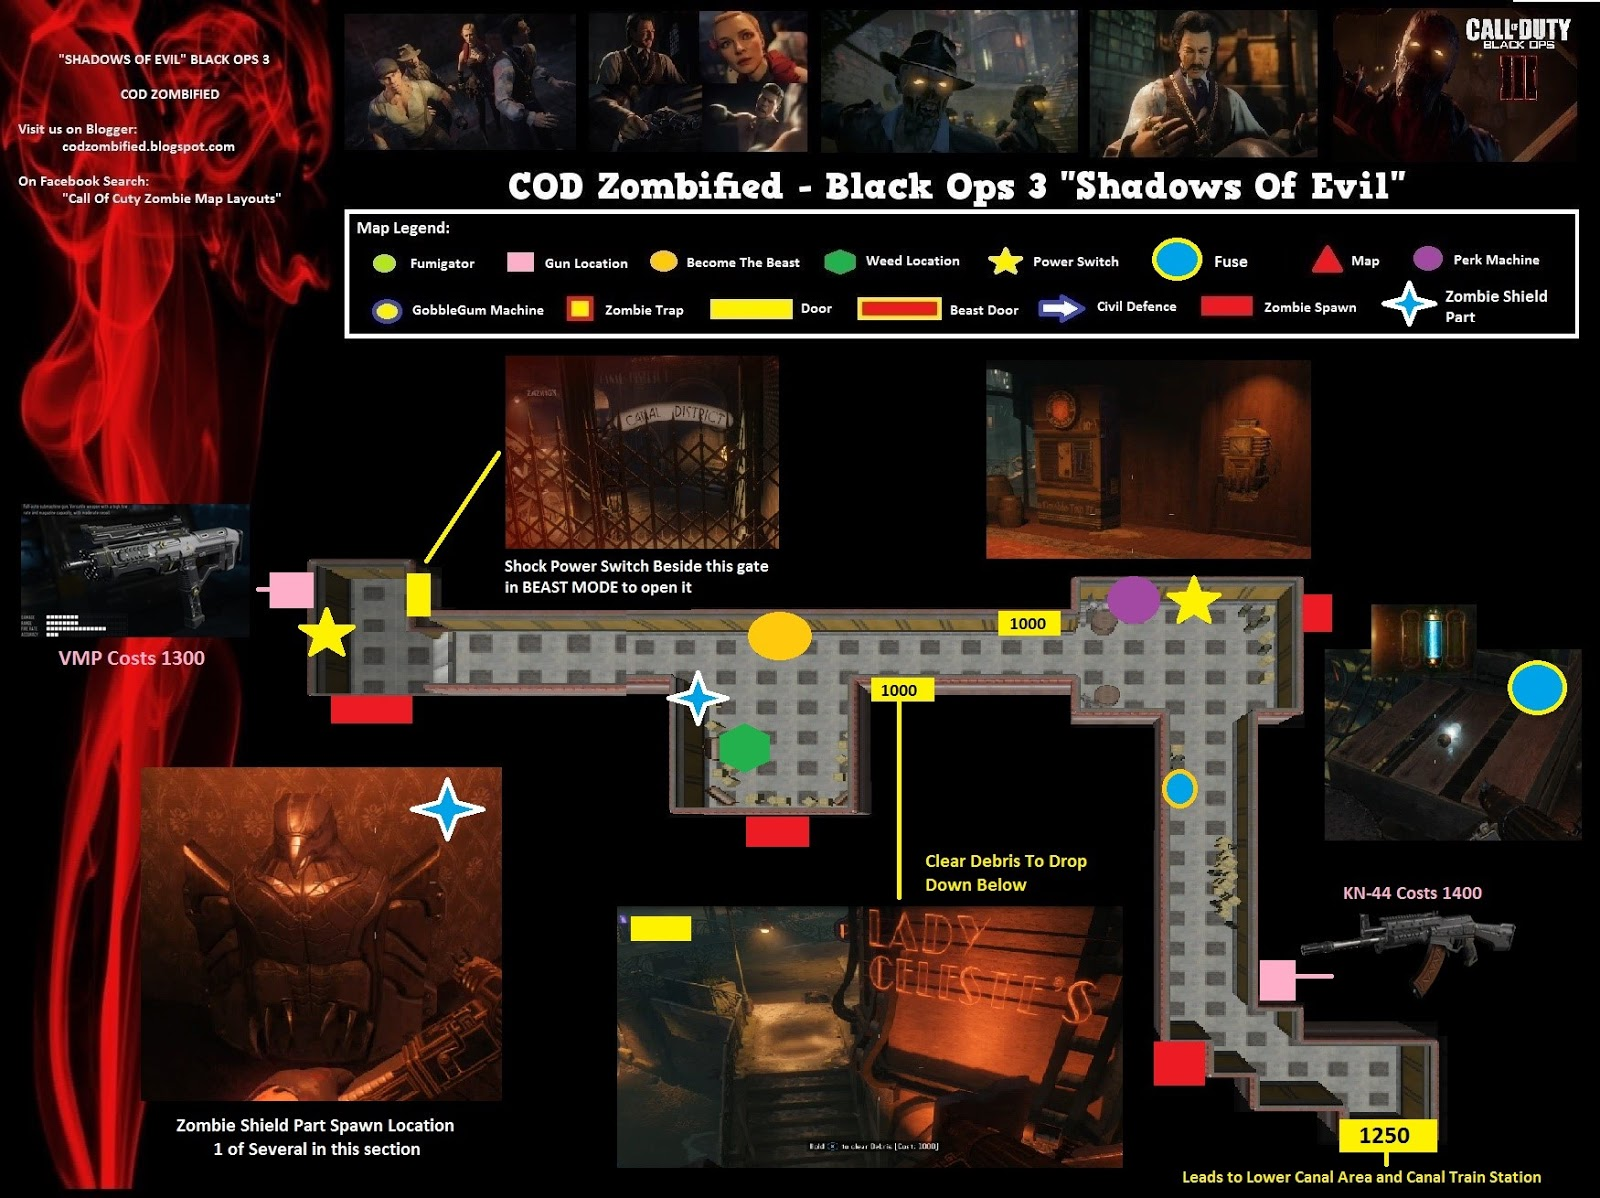 Fuse Box In Black Ops Zombies : Fuse locations shadows of evil man elsavadorla